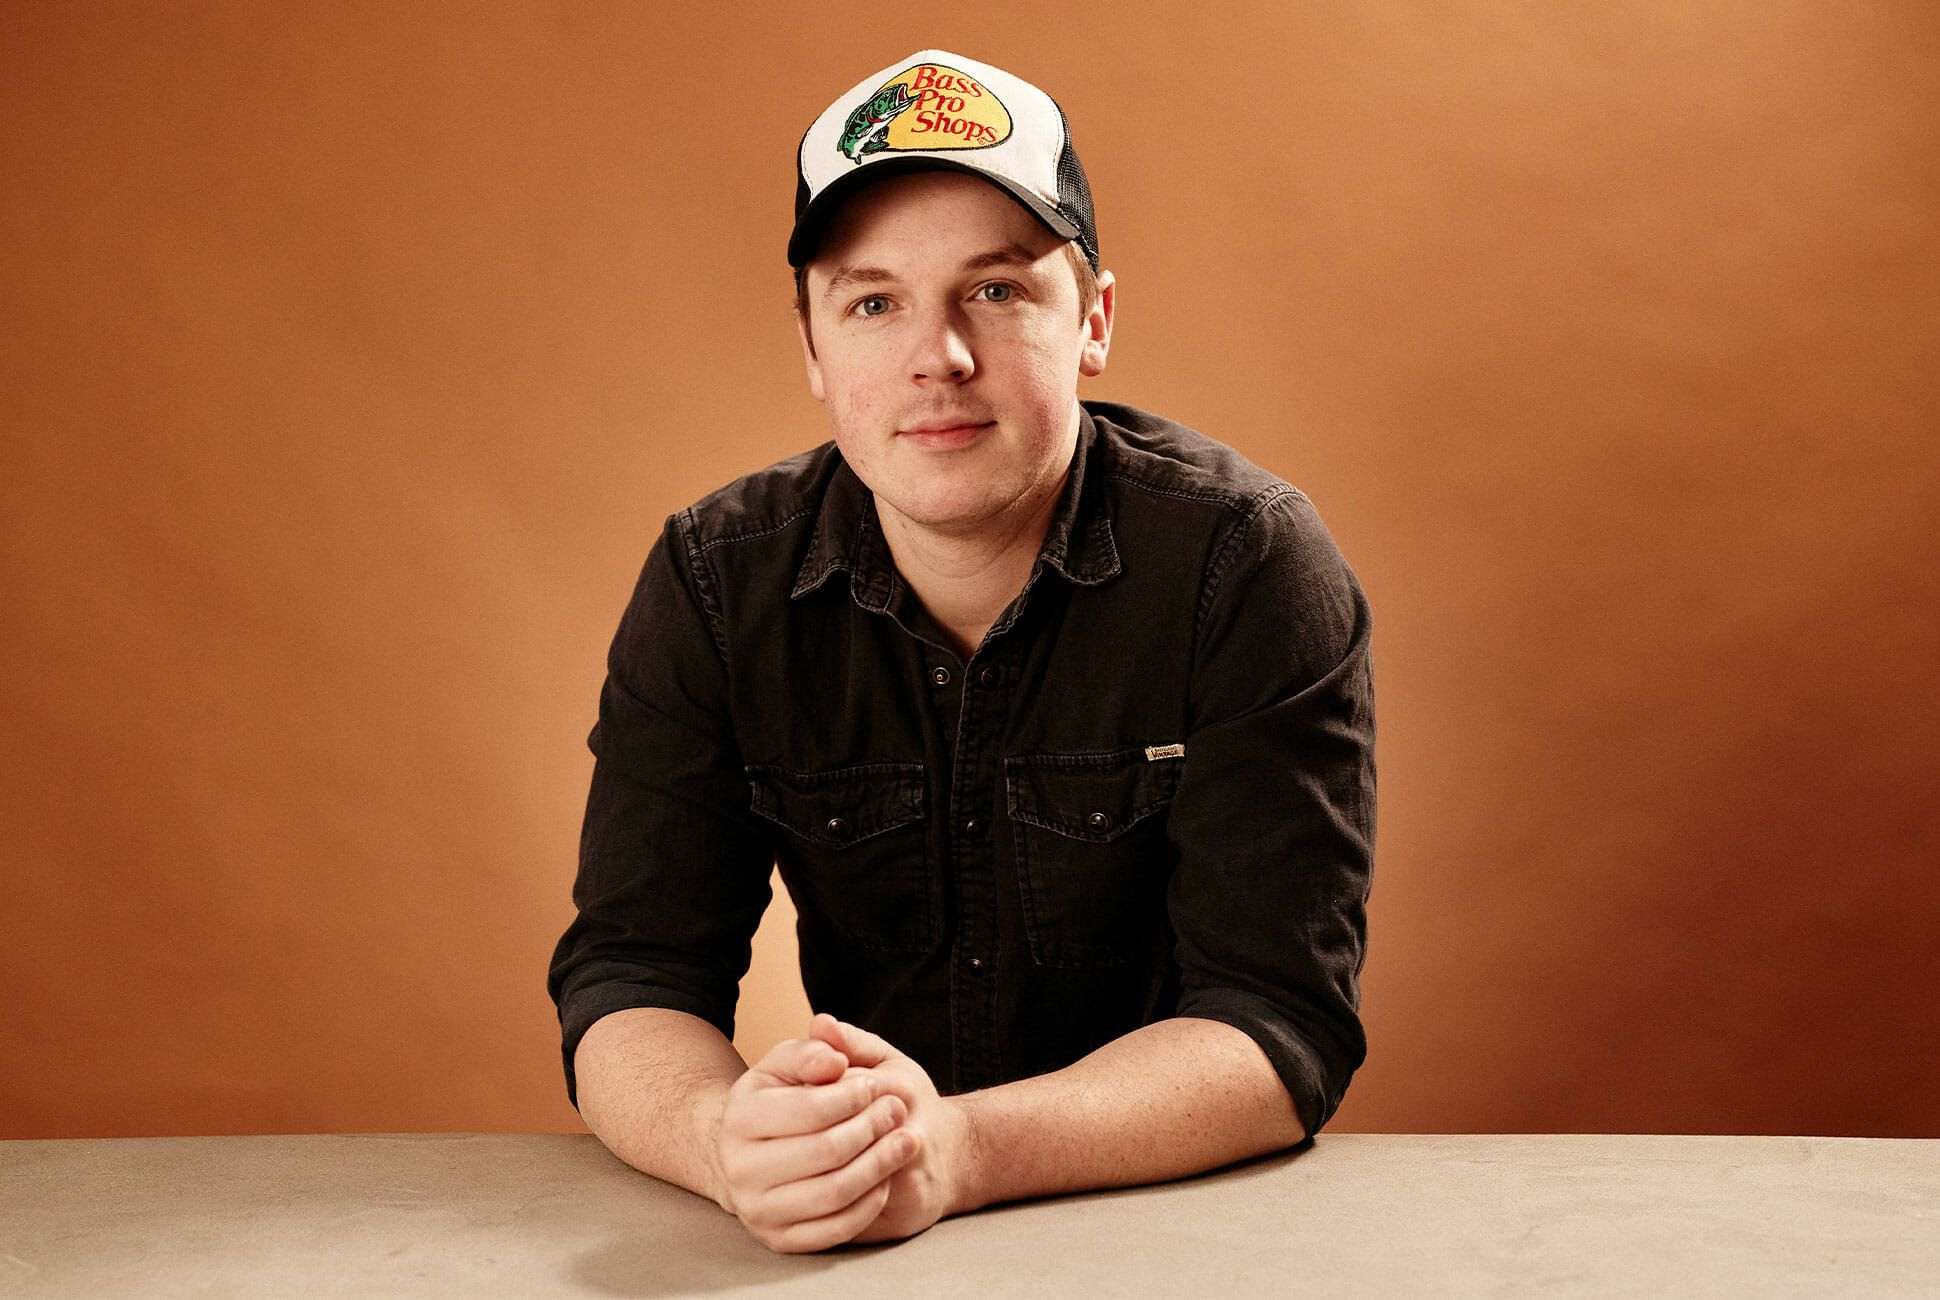 Gibson Guitars, Cult-Favorite Pedals and More: Travis Denning's Tour Essentials